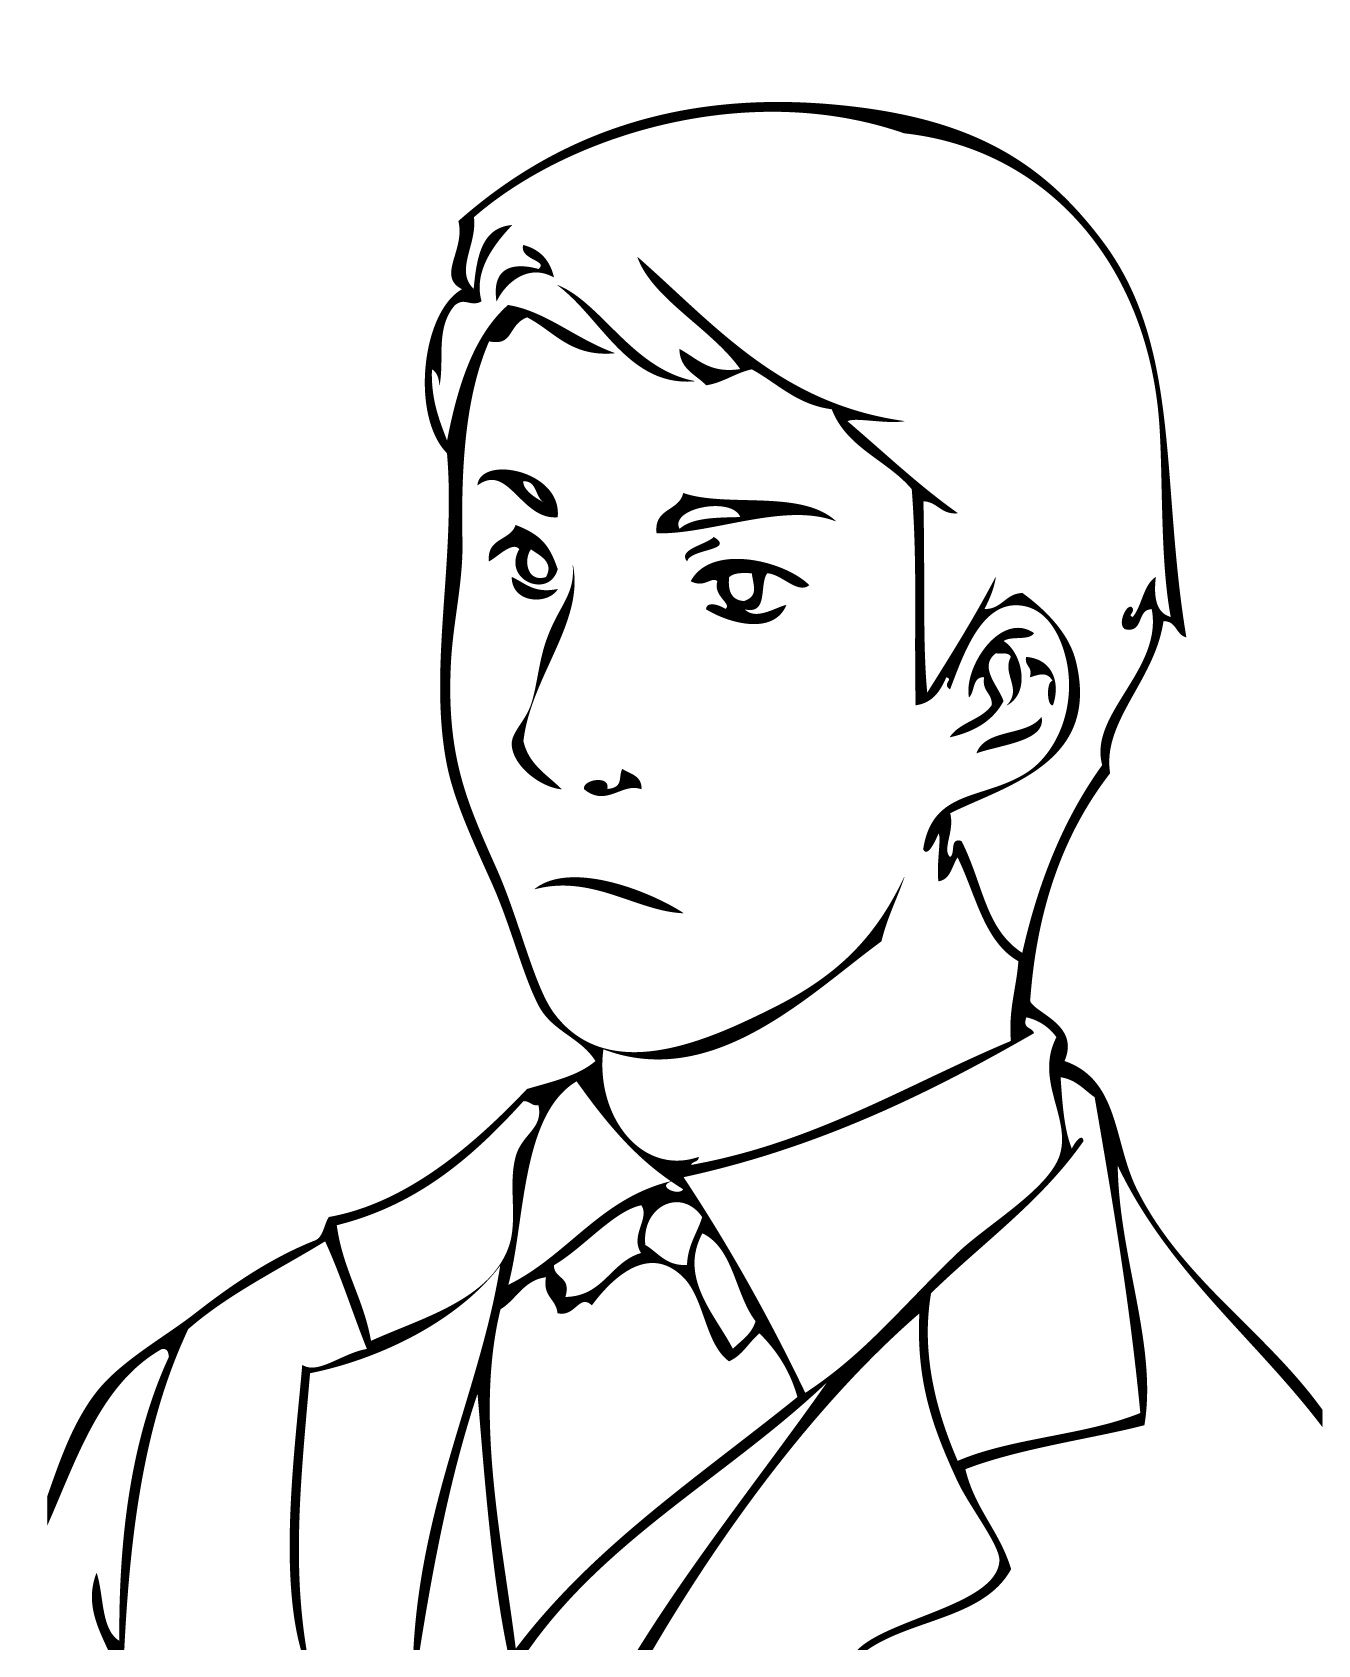 Thomas Edison as young man coloring page | Coloring pages ...